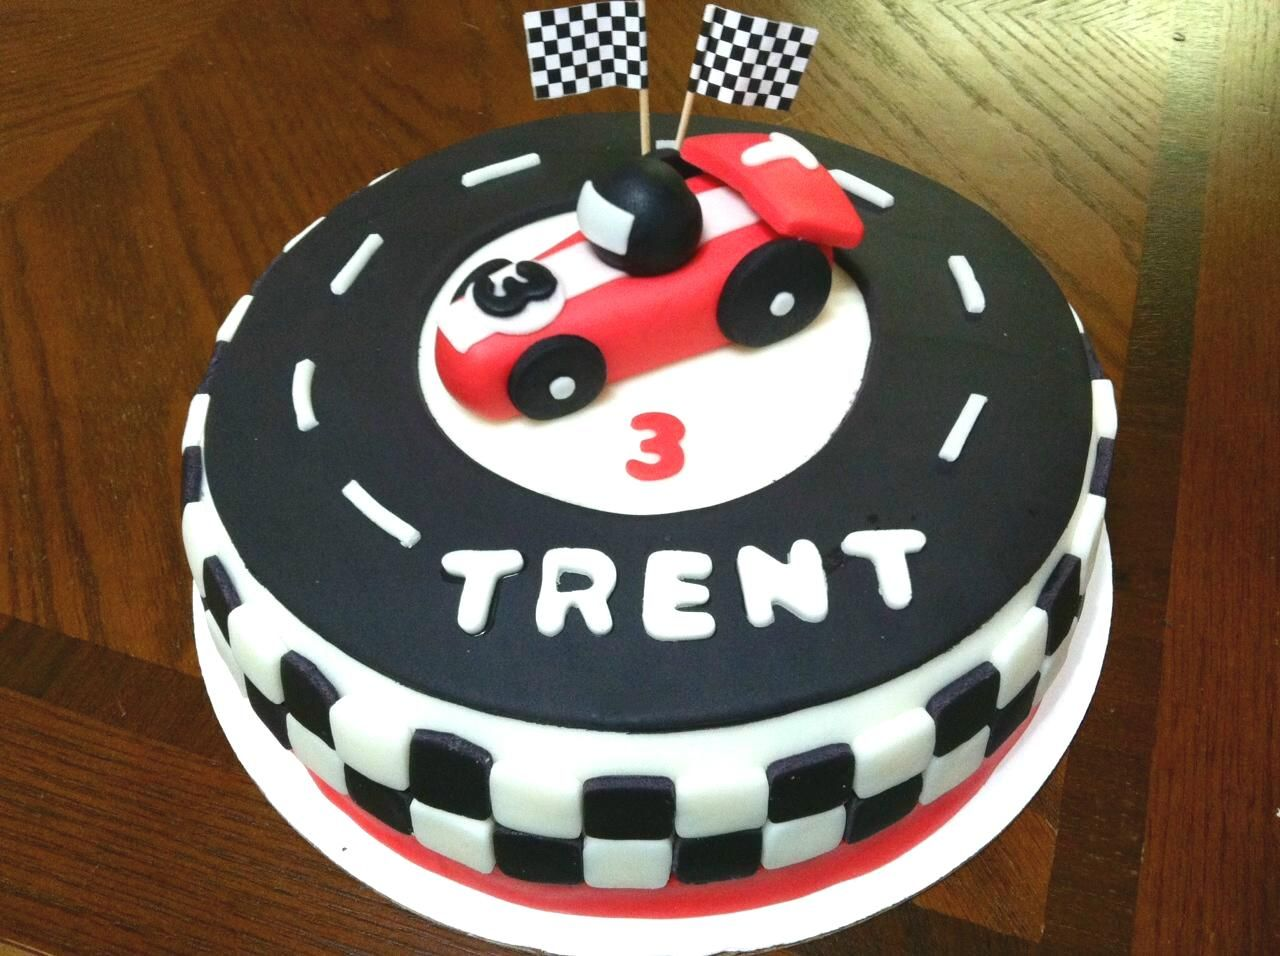 Chocolate vegan race car birthday cake My cakes Pinterest